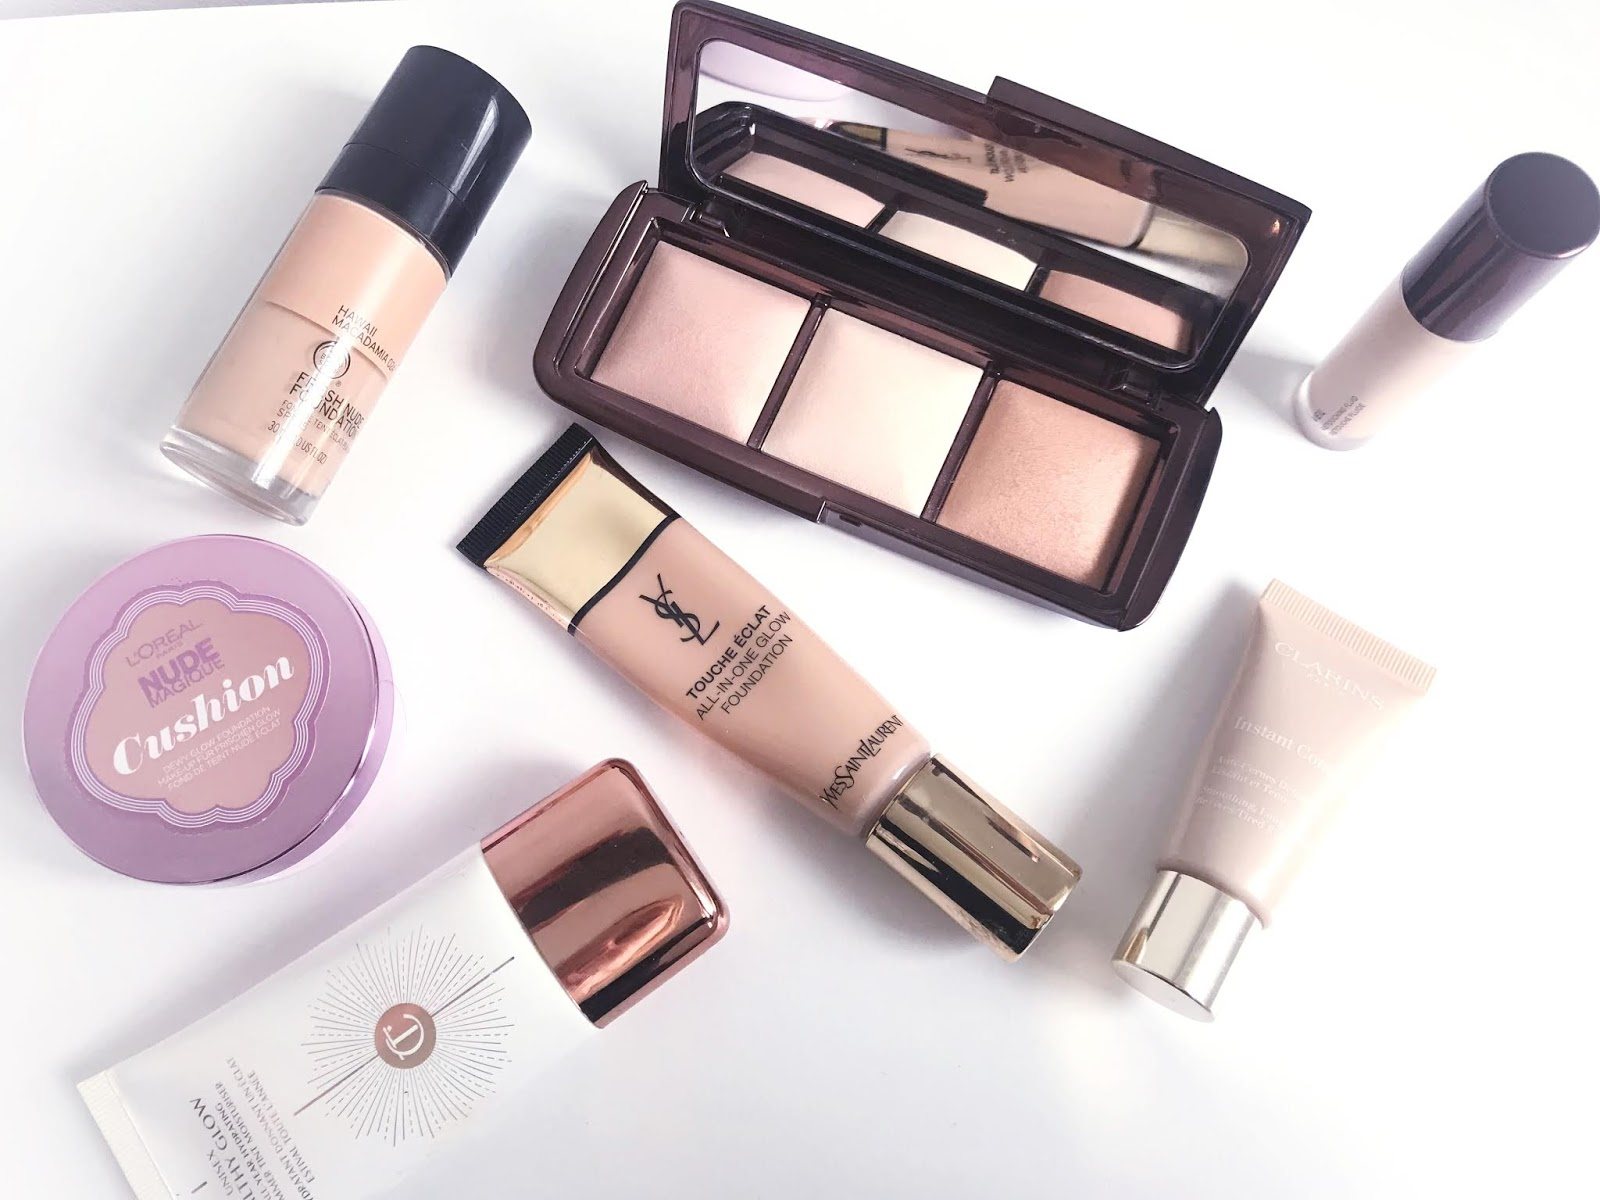 Foundations, concealers and powders